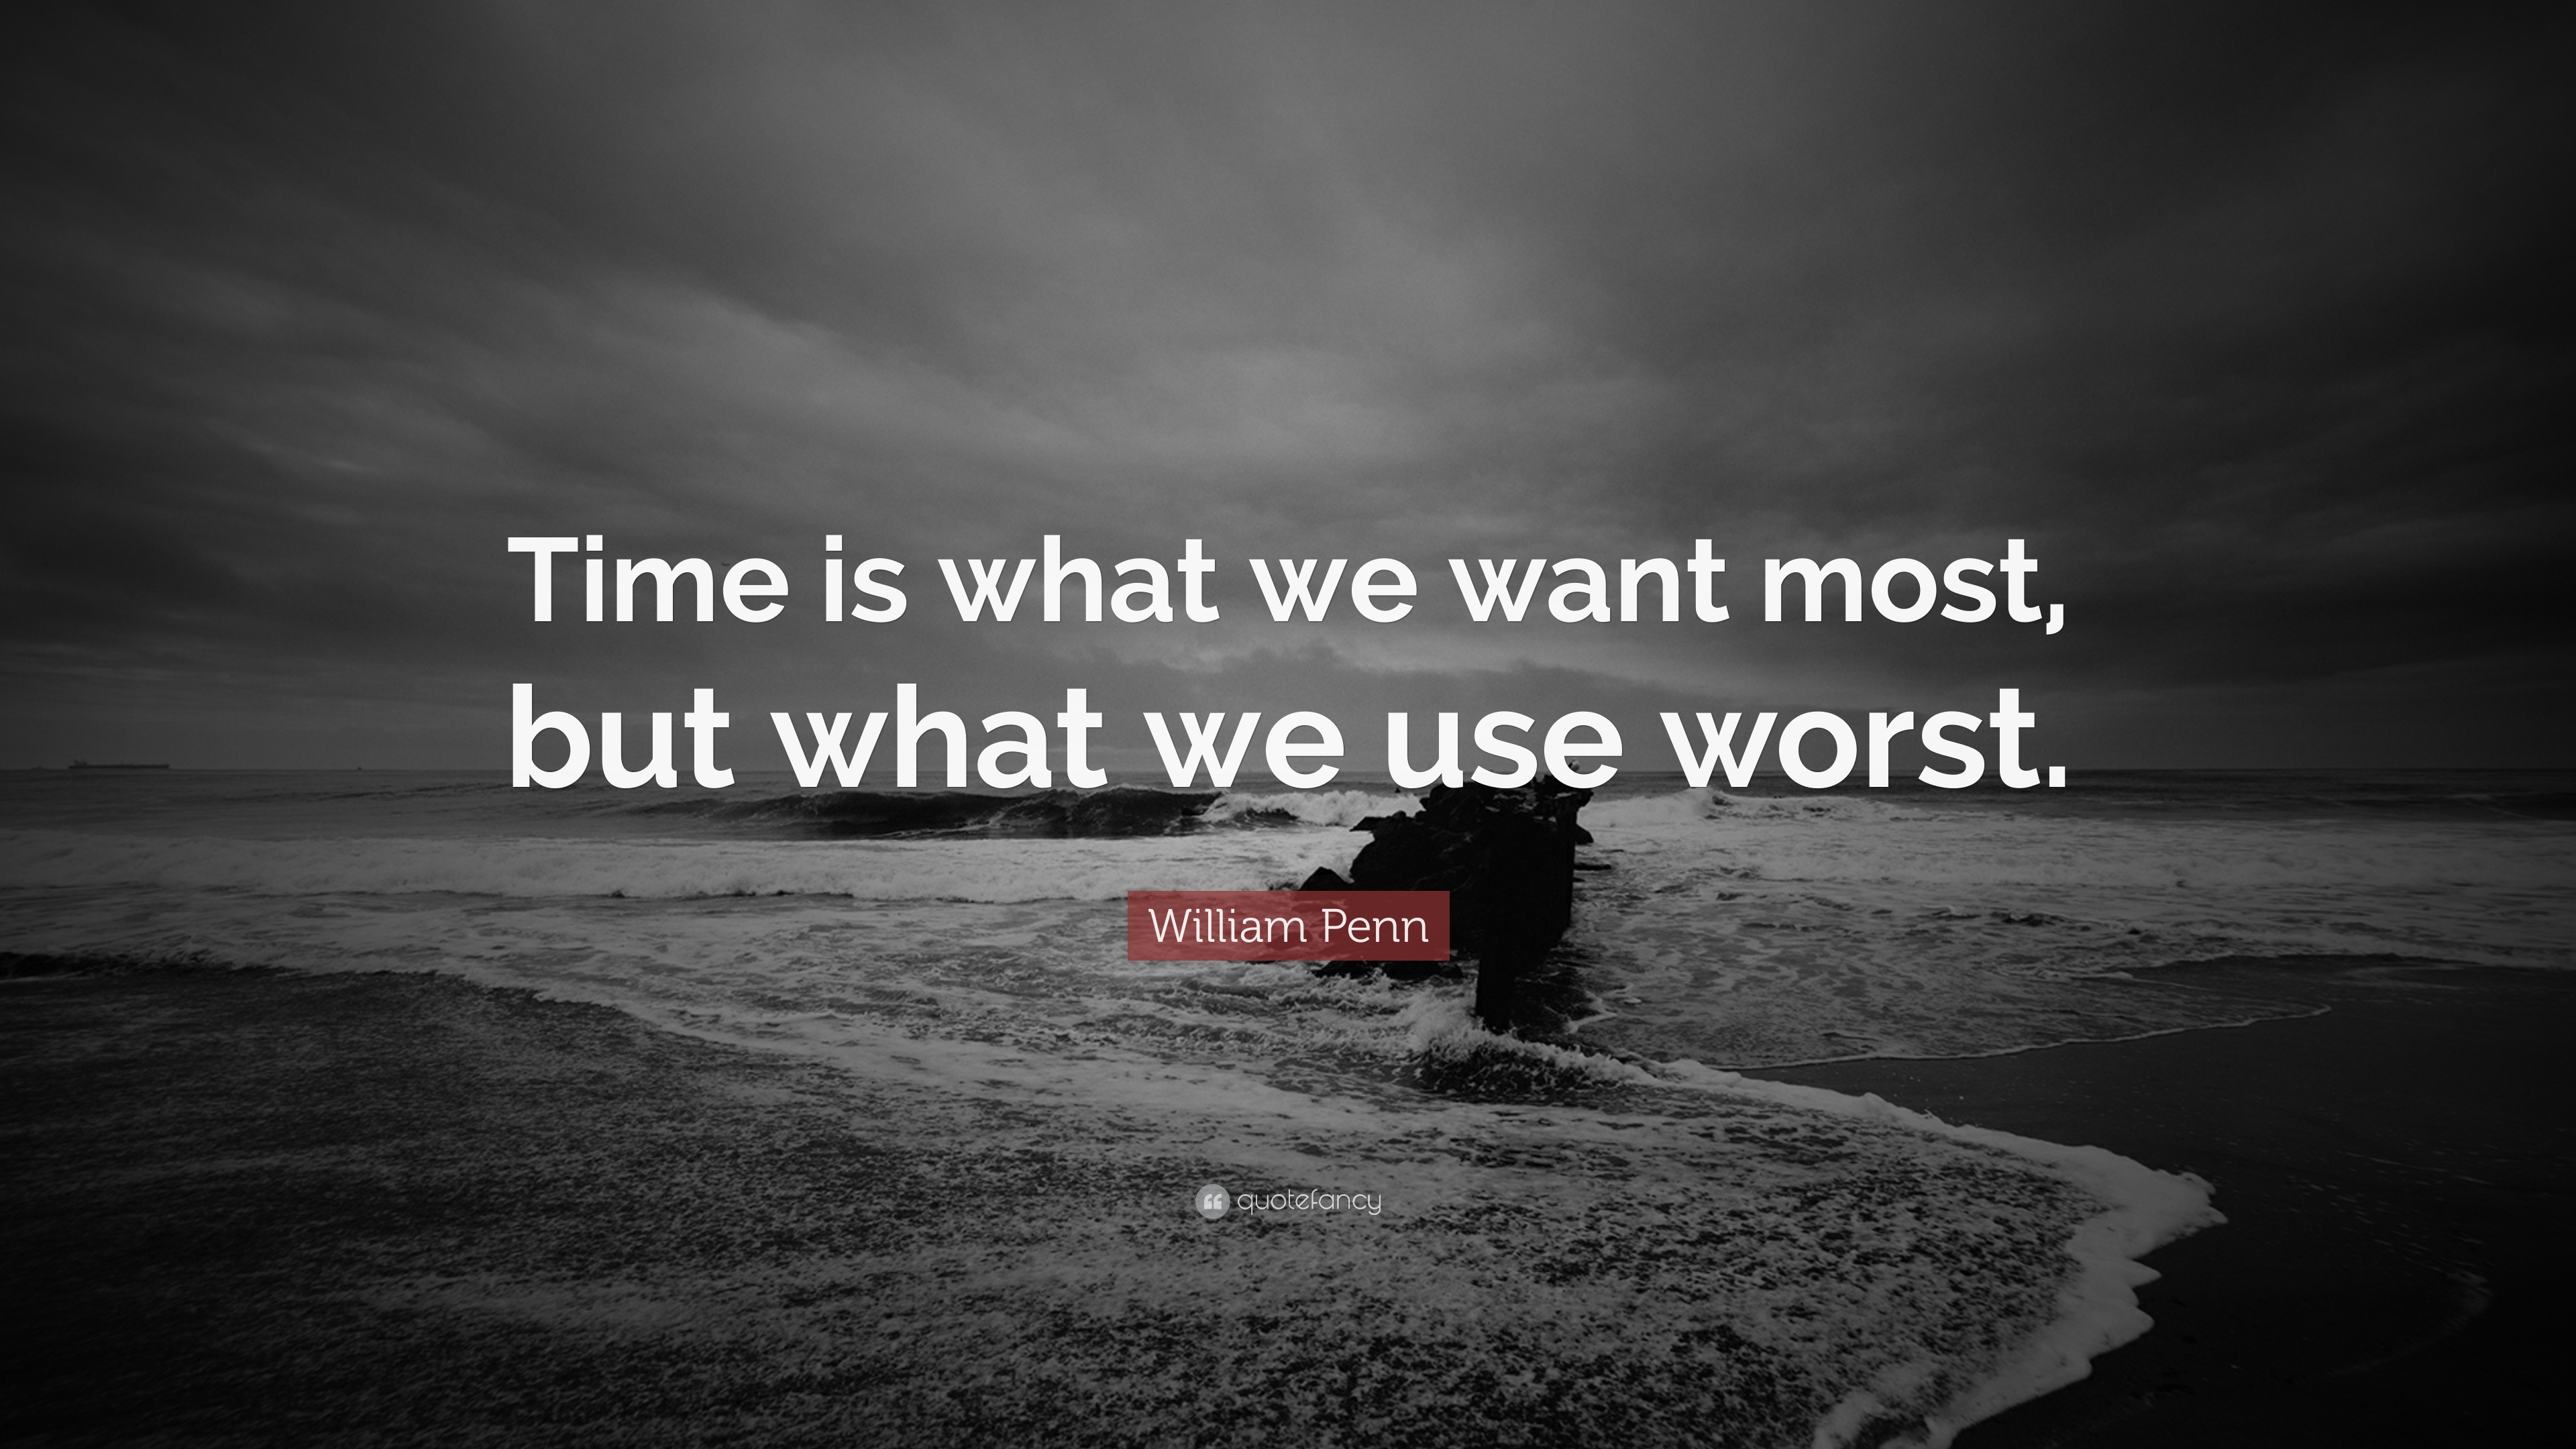 Time Quotes Is What We Want Most But Use Worst